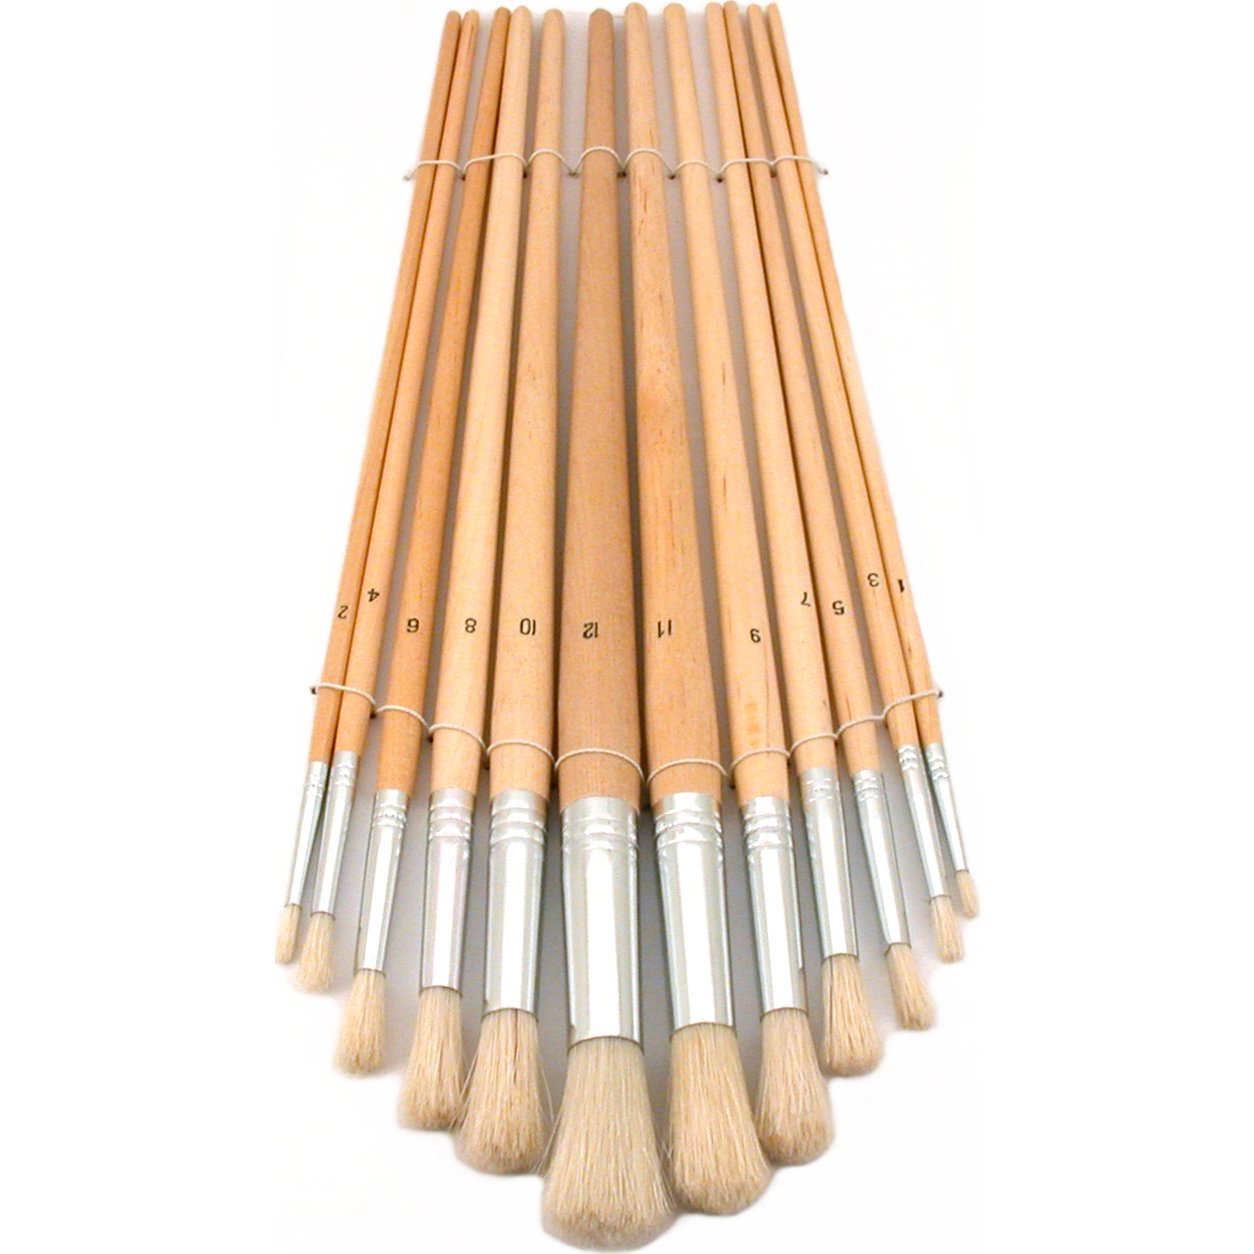 12 Round Tip Paint Brushes